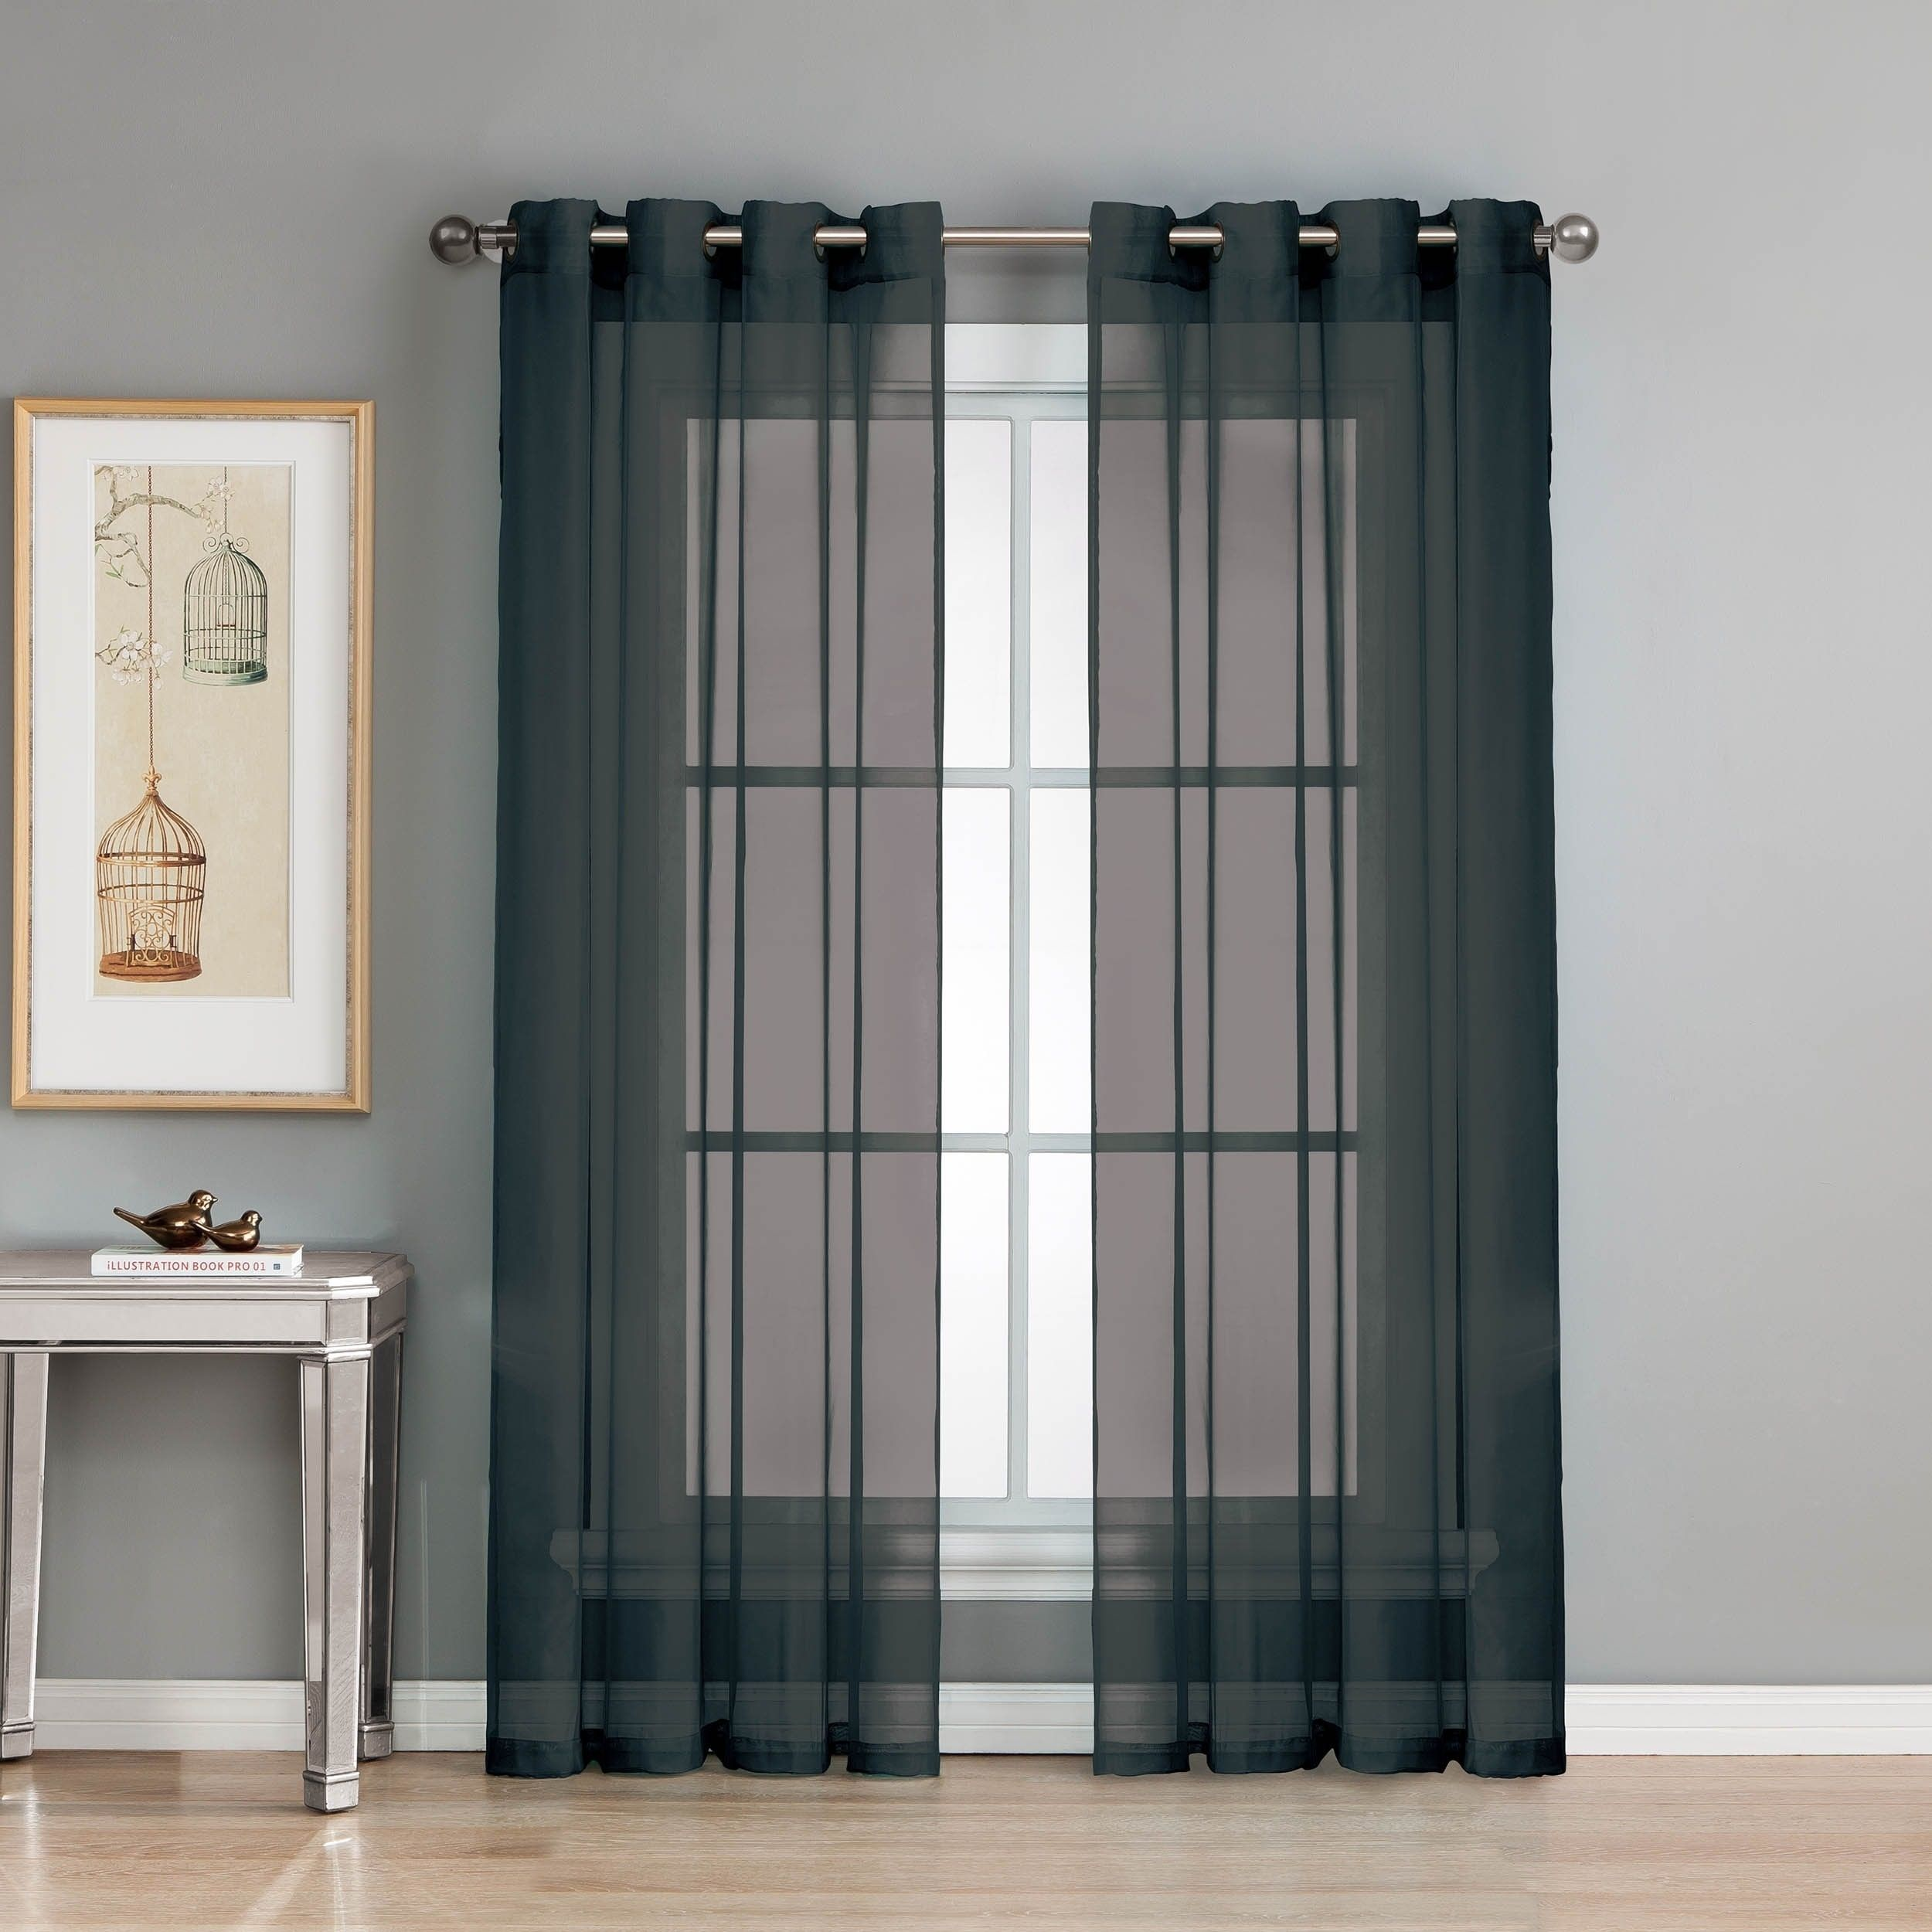 curtain voile single curtains sheer panel extra diamond wide pin grommet